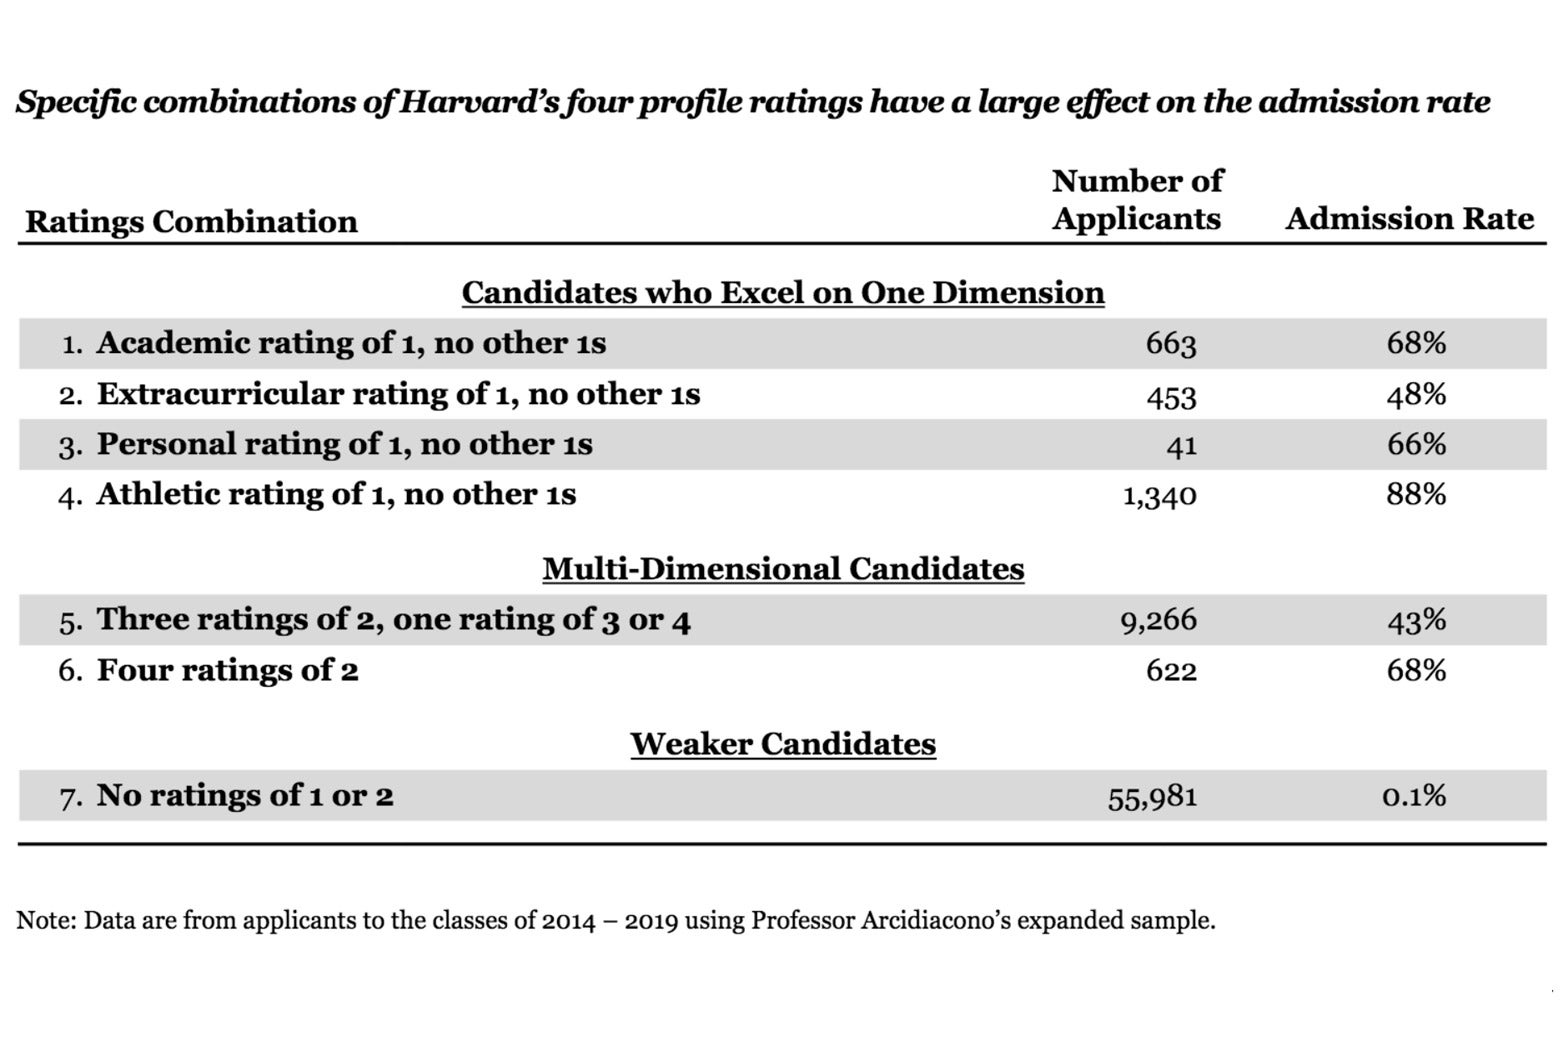 Chart of how combinations of Harvard's four profile ratings affect the admissions rate.